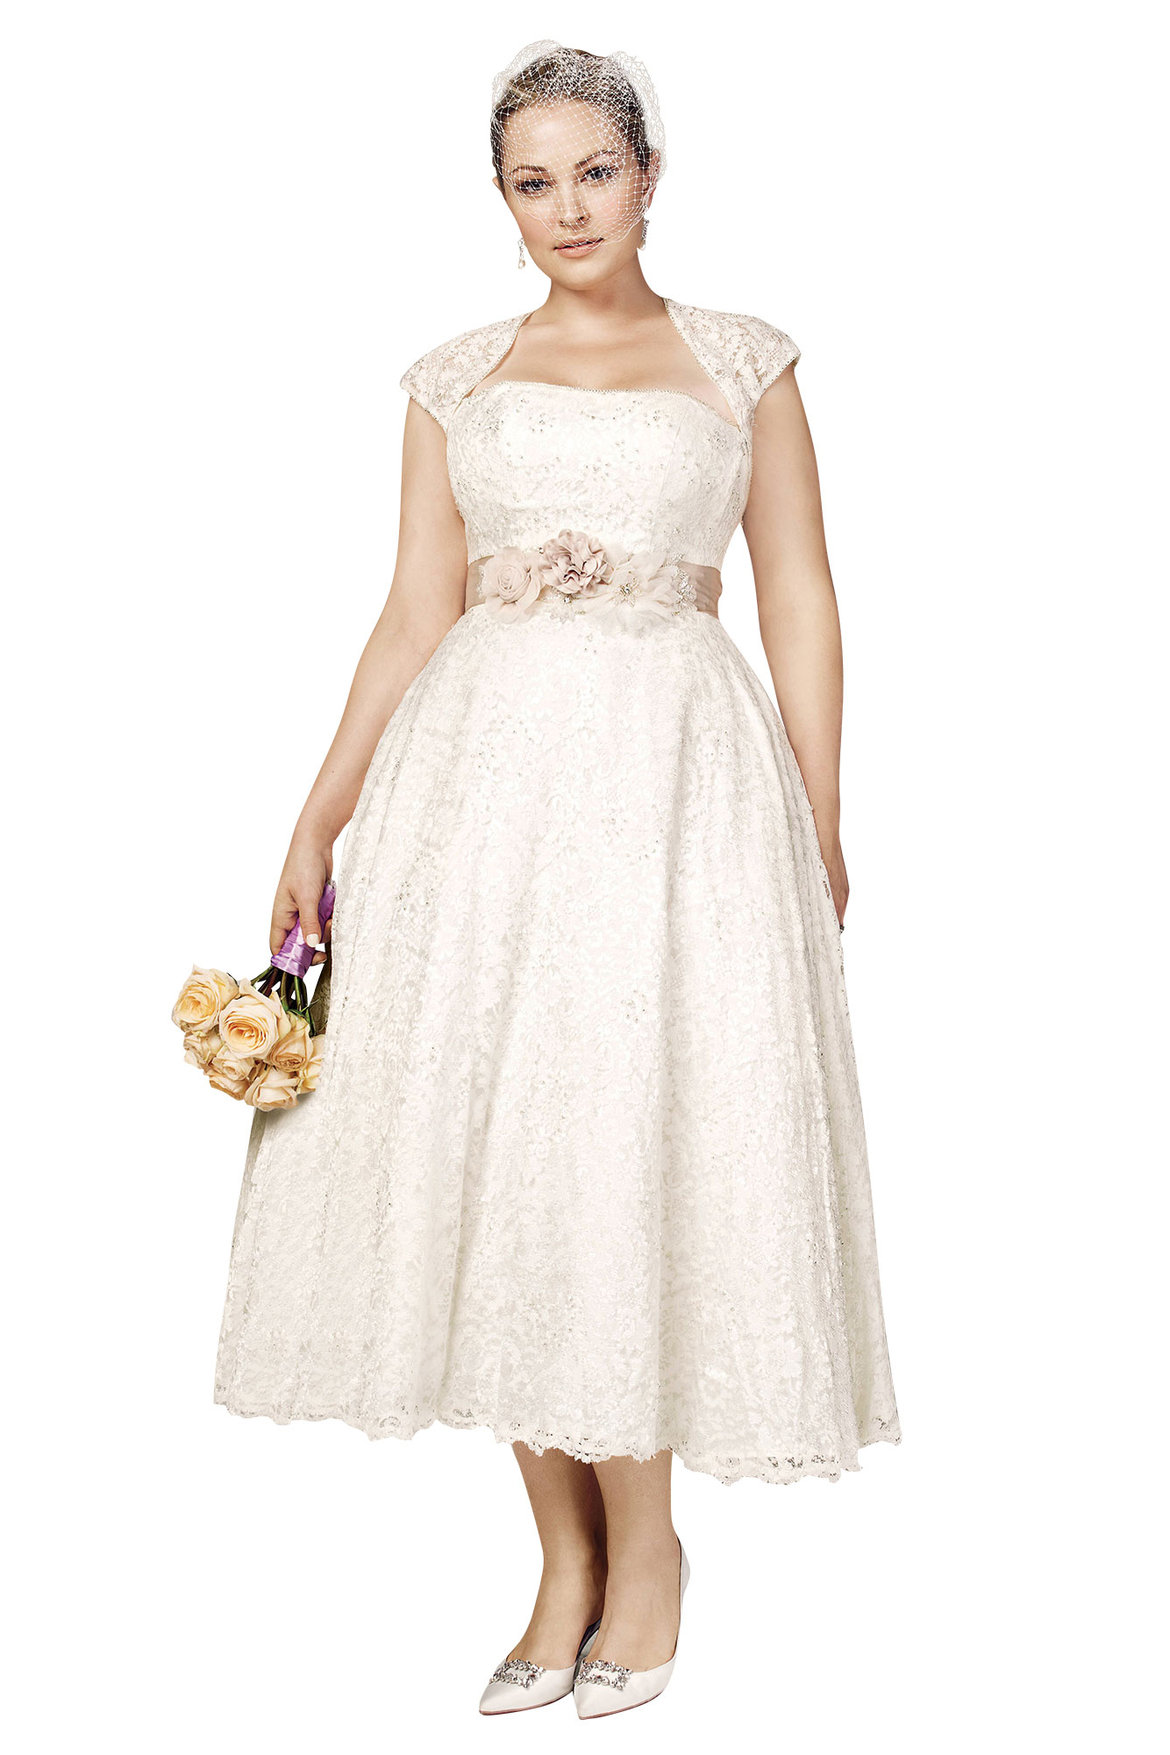 davids bridal wedding gown